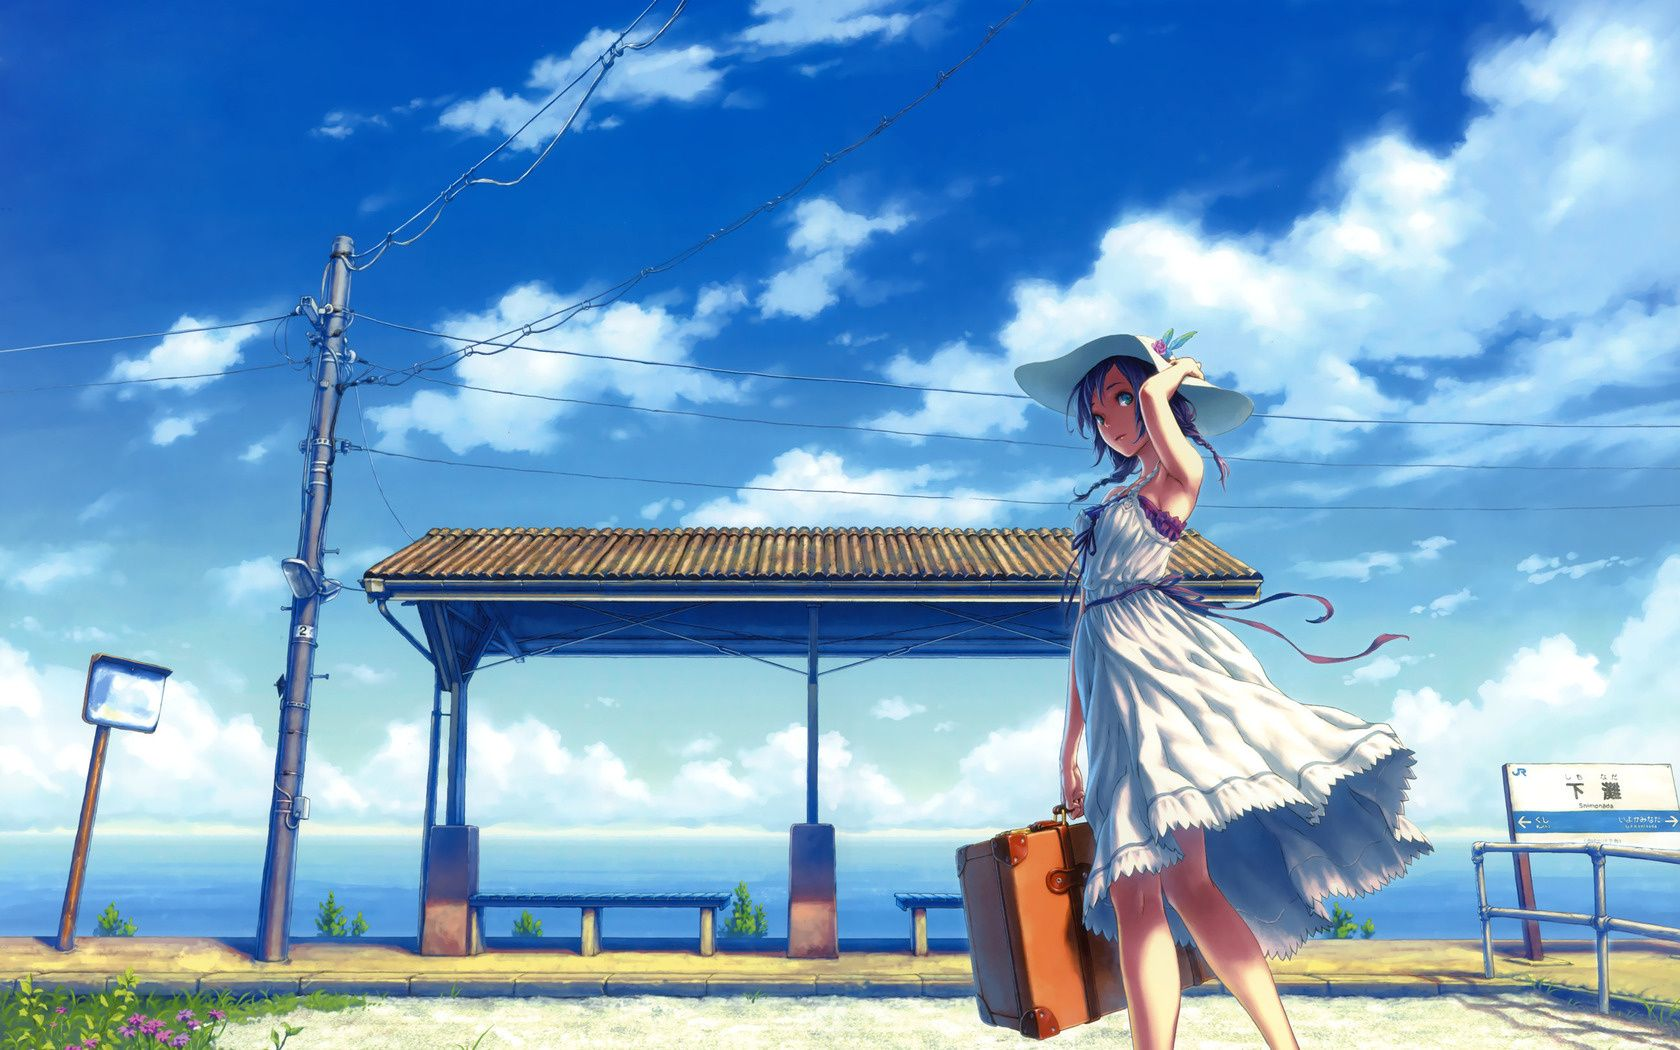 Pin By Oisris Wu On Nijigen Anime Summer Sky Anime Anime Scenery